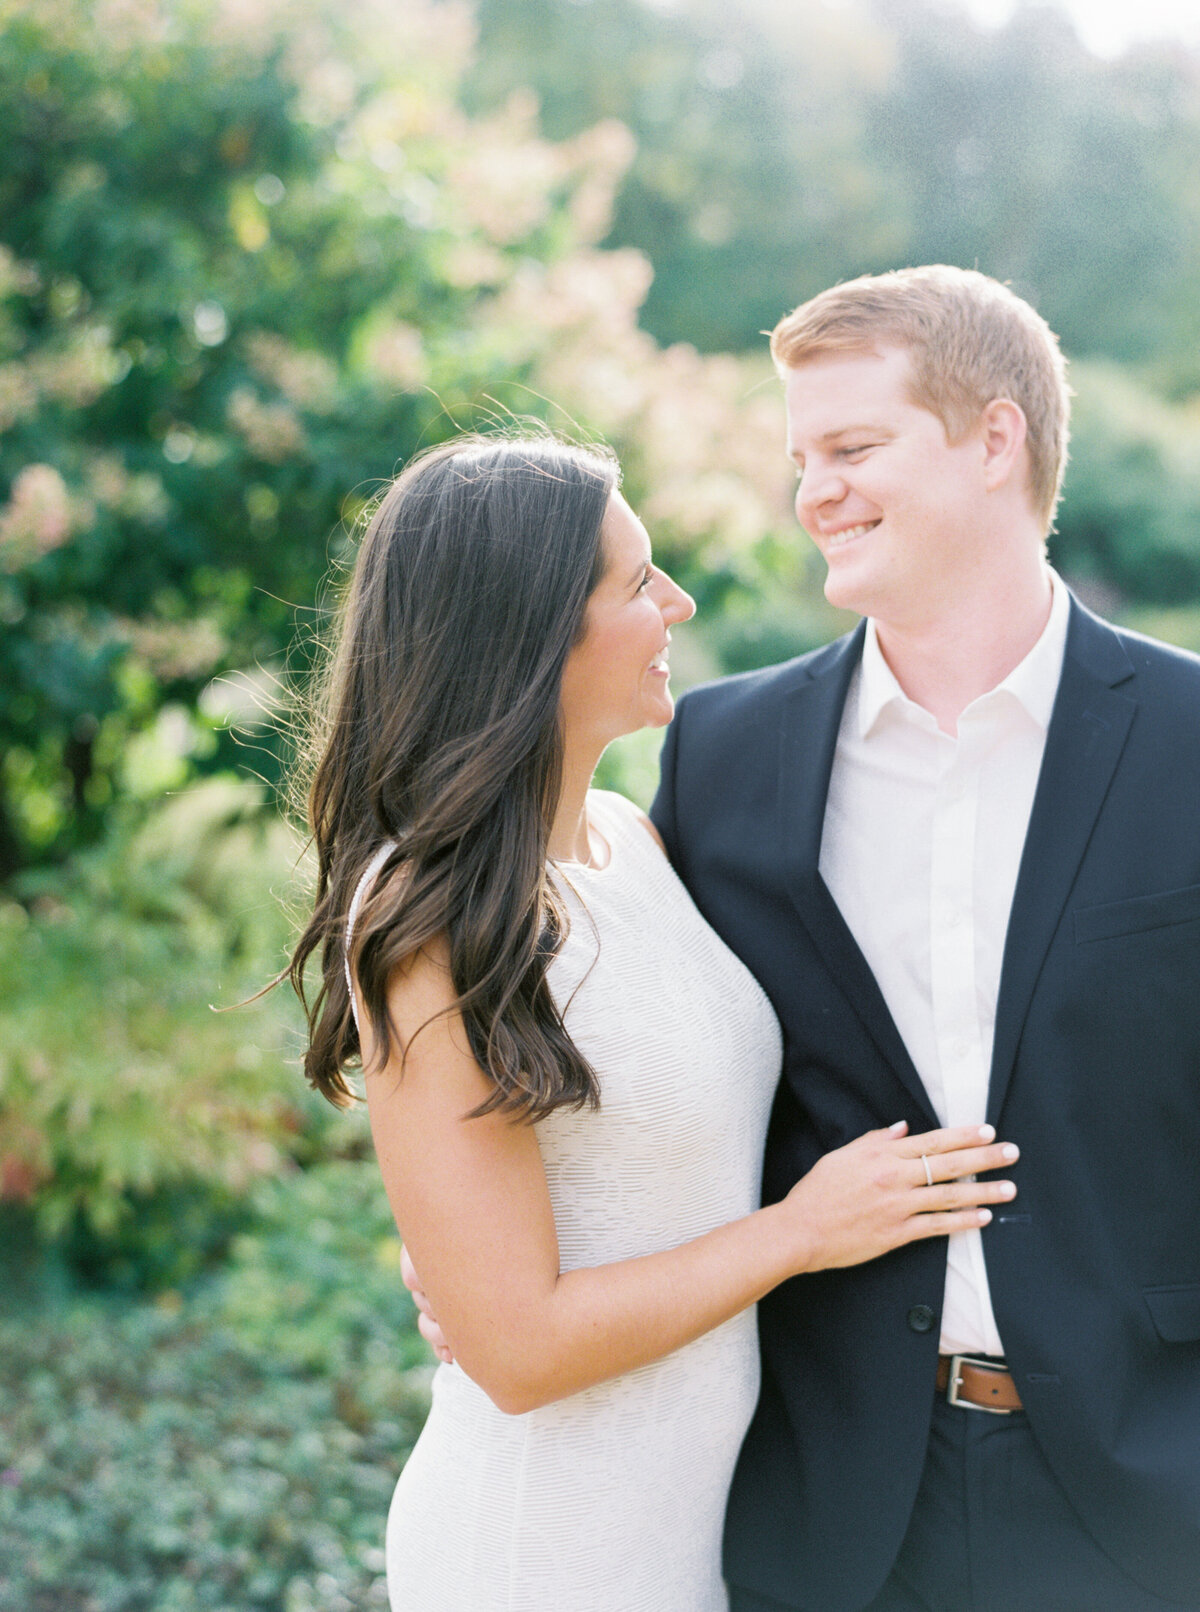 Minnesota wedding photographer, Minneapolis wedding photographer, MN wedding photographer, MN engagement photos, Minnesota Engagement Photos, Norenberg Garden, Norenberg Garden Photos, Norenberg Garden Engagement Photos